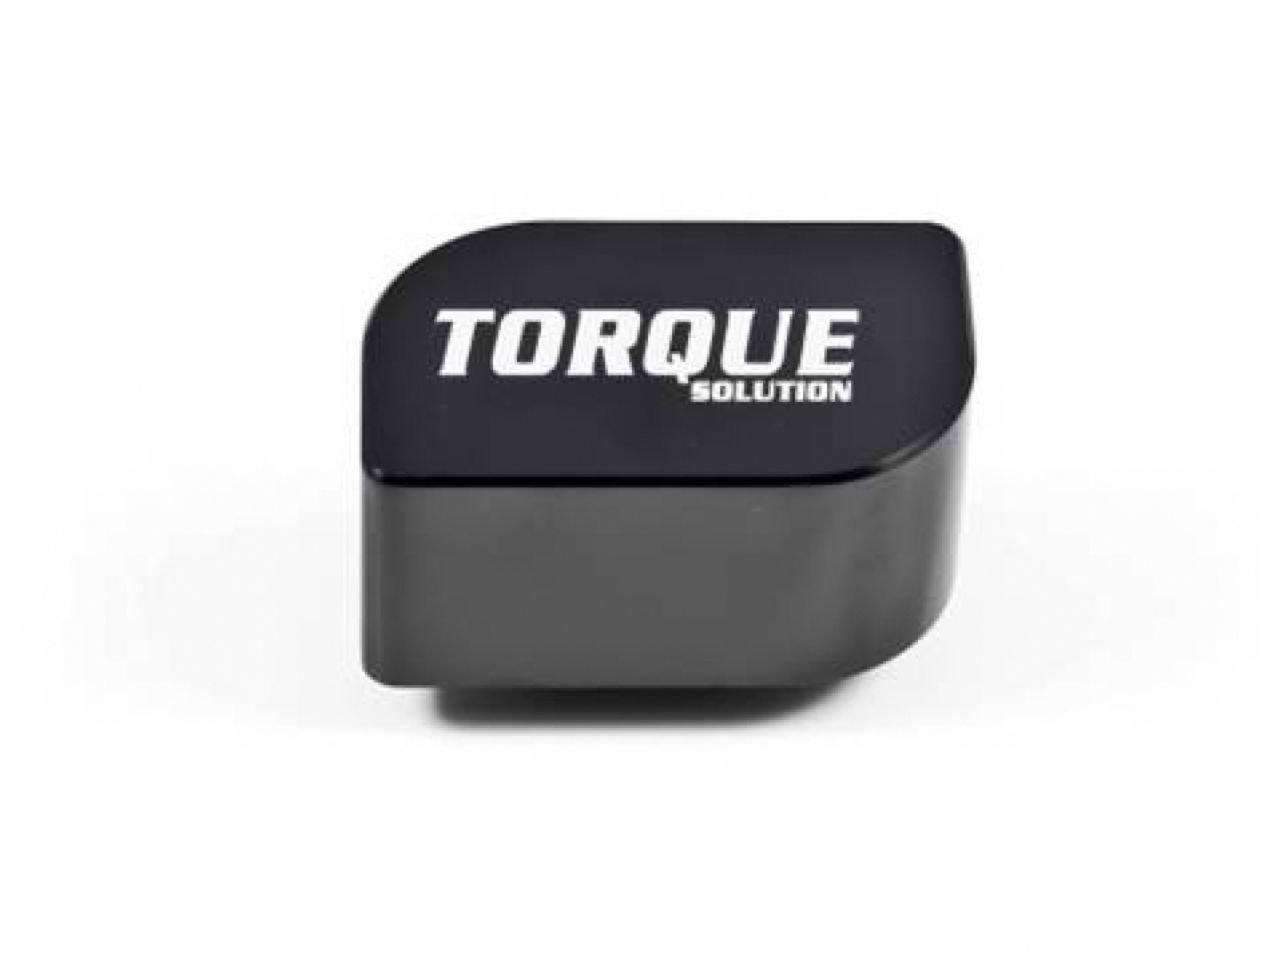 Torque Solution Short Shift Weight Fits Mazdaspeed 6 2006-2007